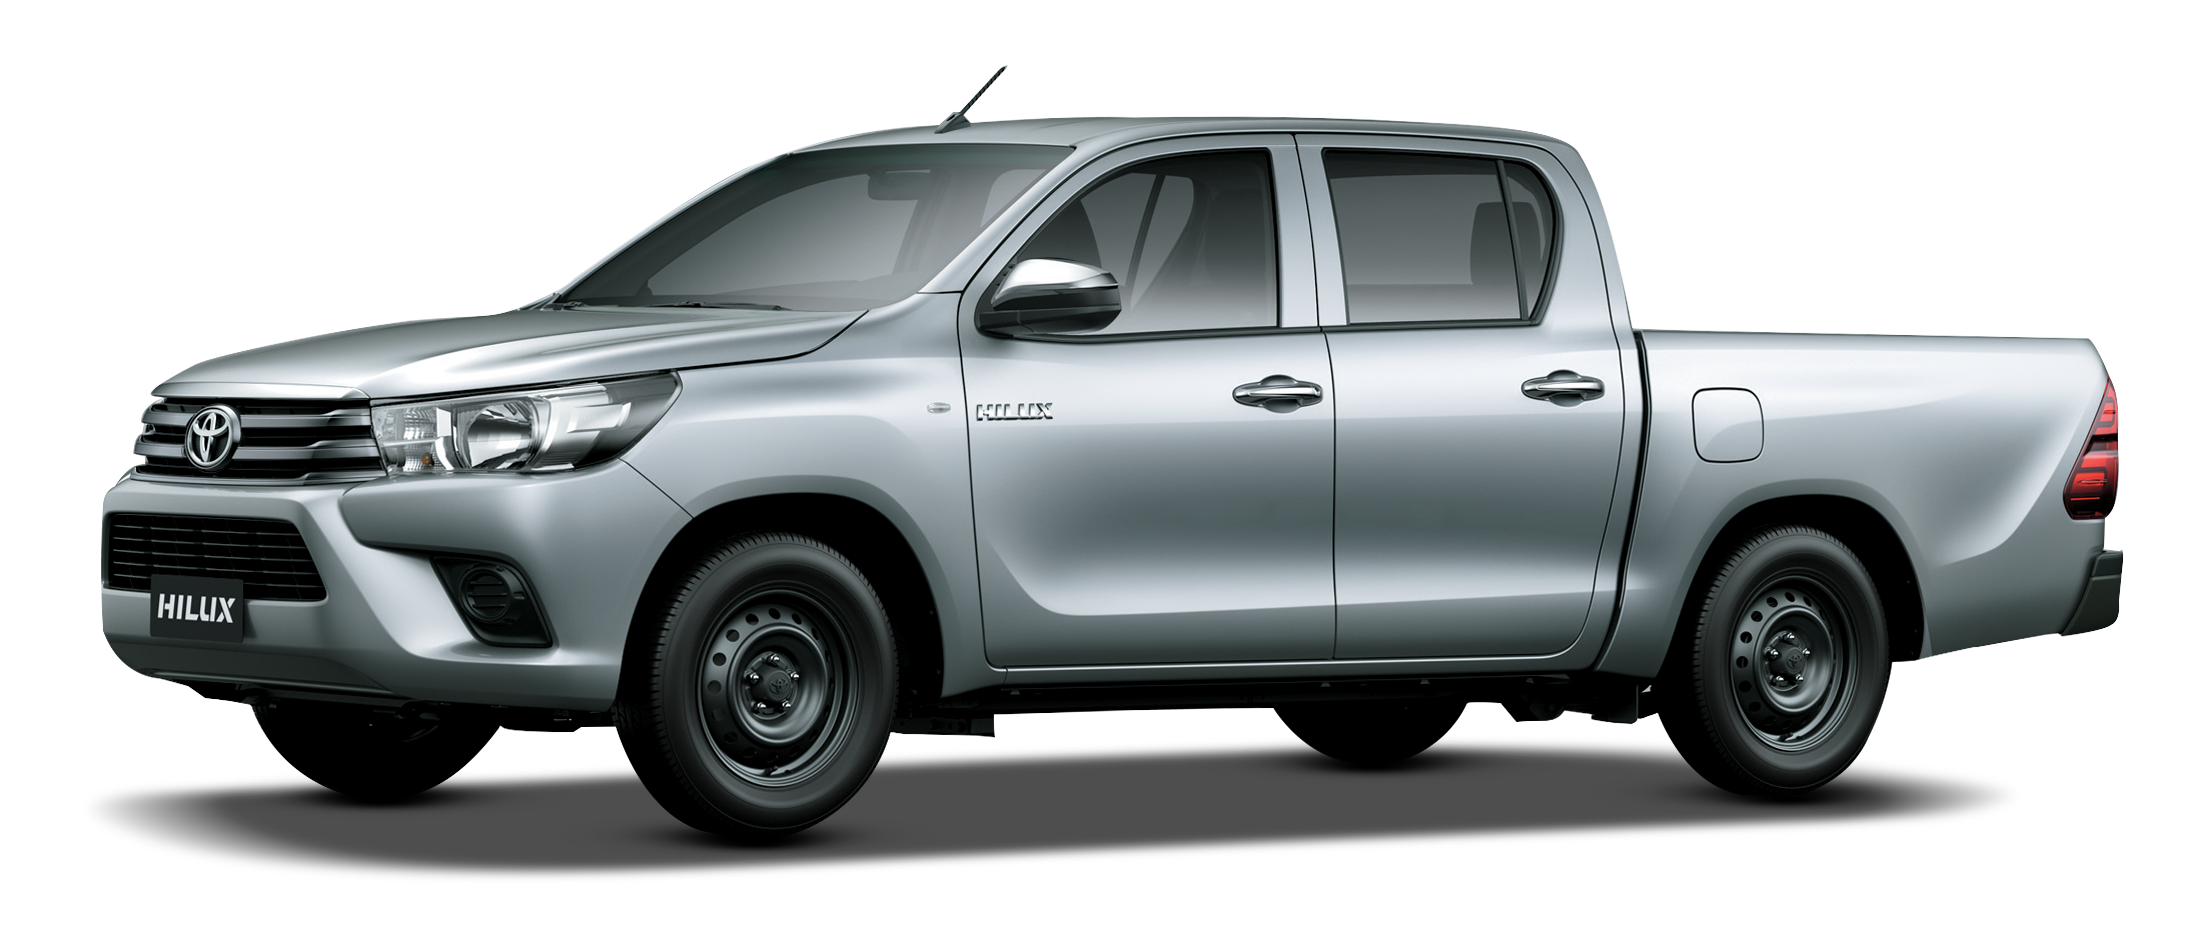 Toyota Hilux Low Bed Doble Cabina 2019